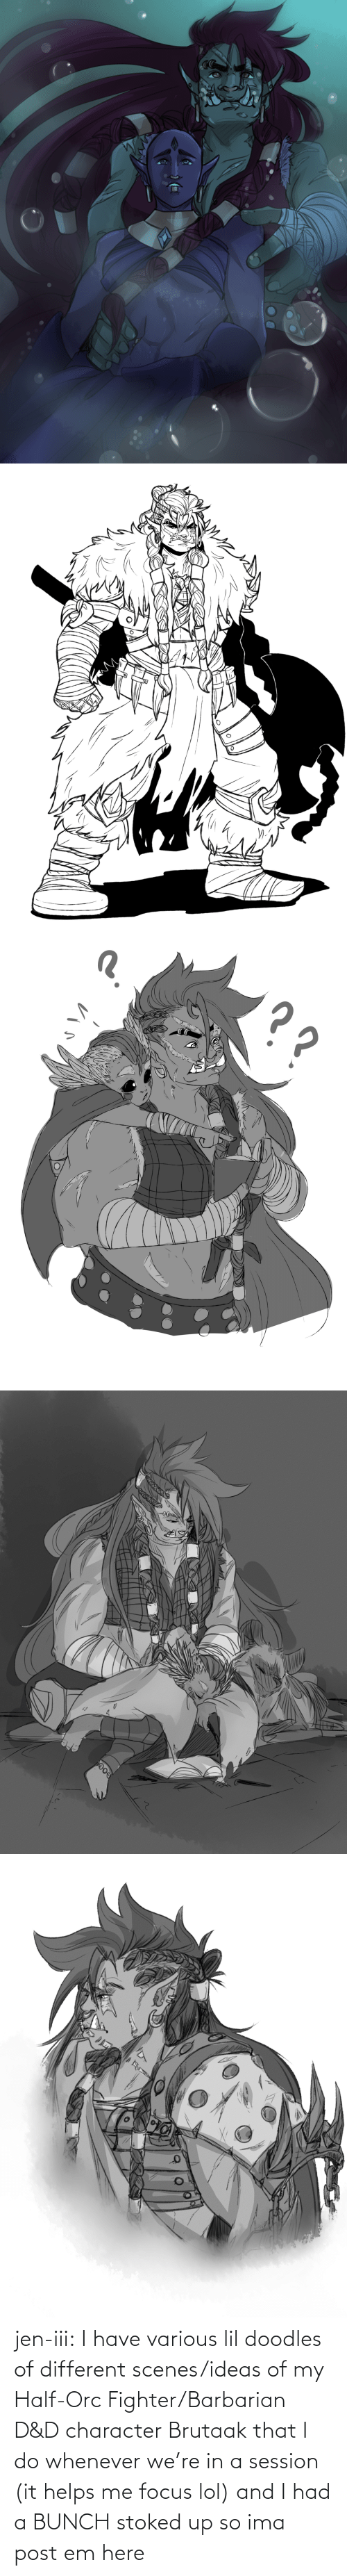 Of My: jen-iii:  I have various lil doodles of different scenes/ideas of my Half-Orc Fighter/Barbarian D&D character Brutaak that I do whenever we're in a session (it helps me focus lol) and I had a BUNCH stoked up so ima post em here